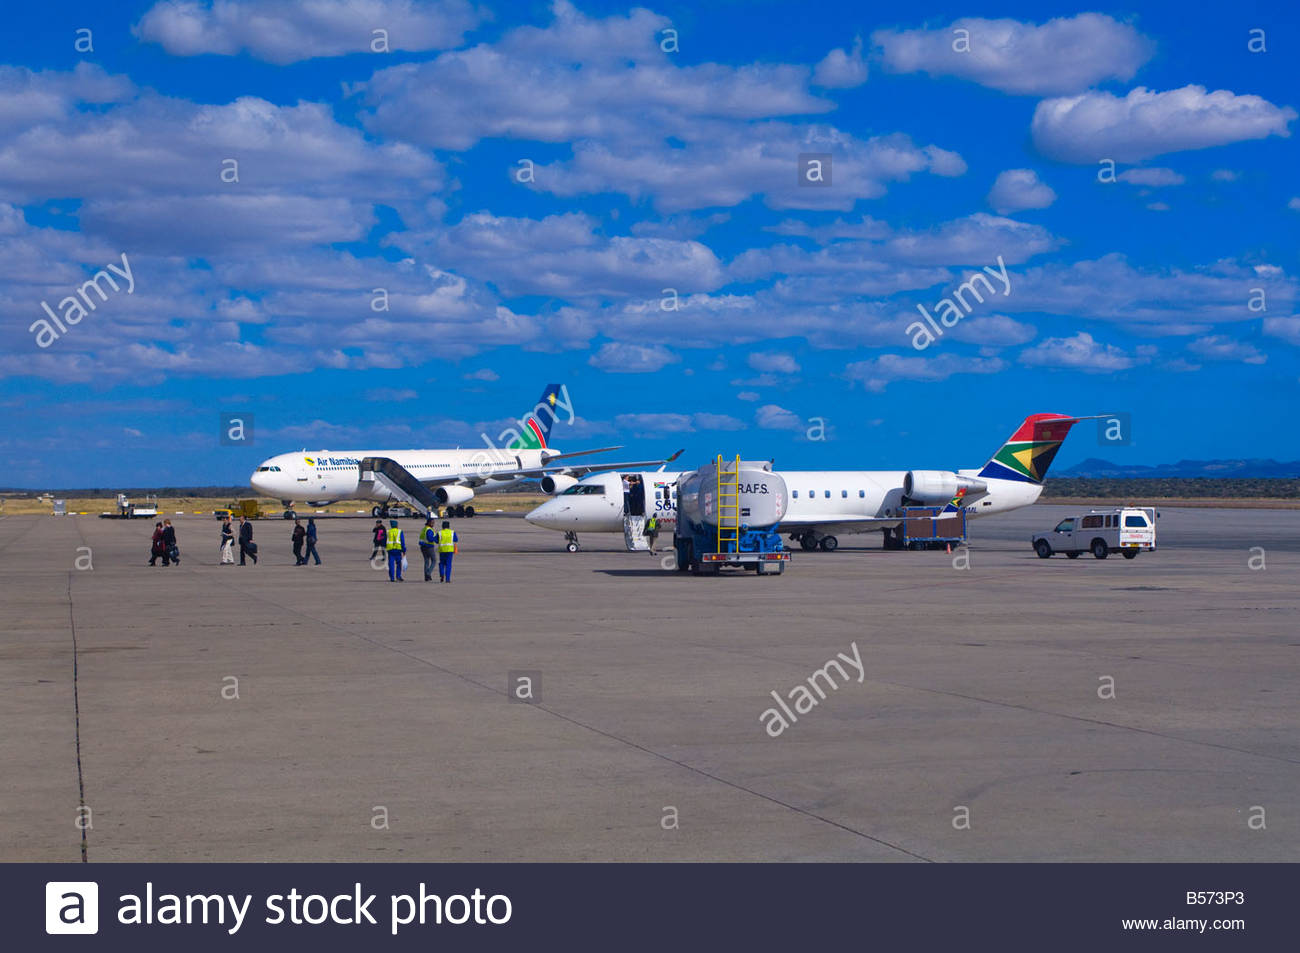 South African Airways and Air Namibia jets on the tarmac at Windhoek International Airport Namibia - Stock Image